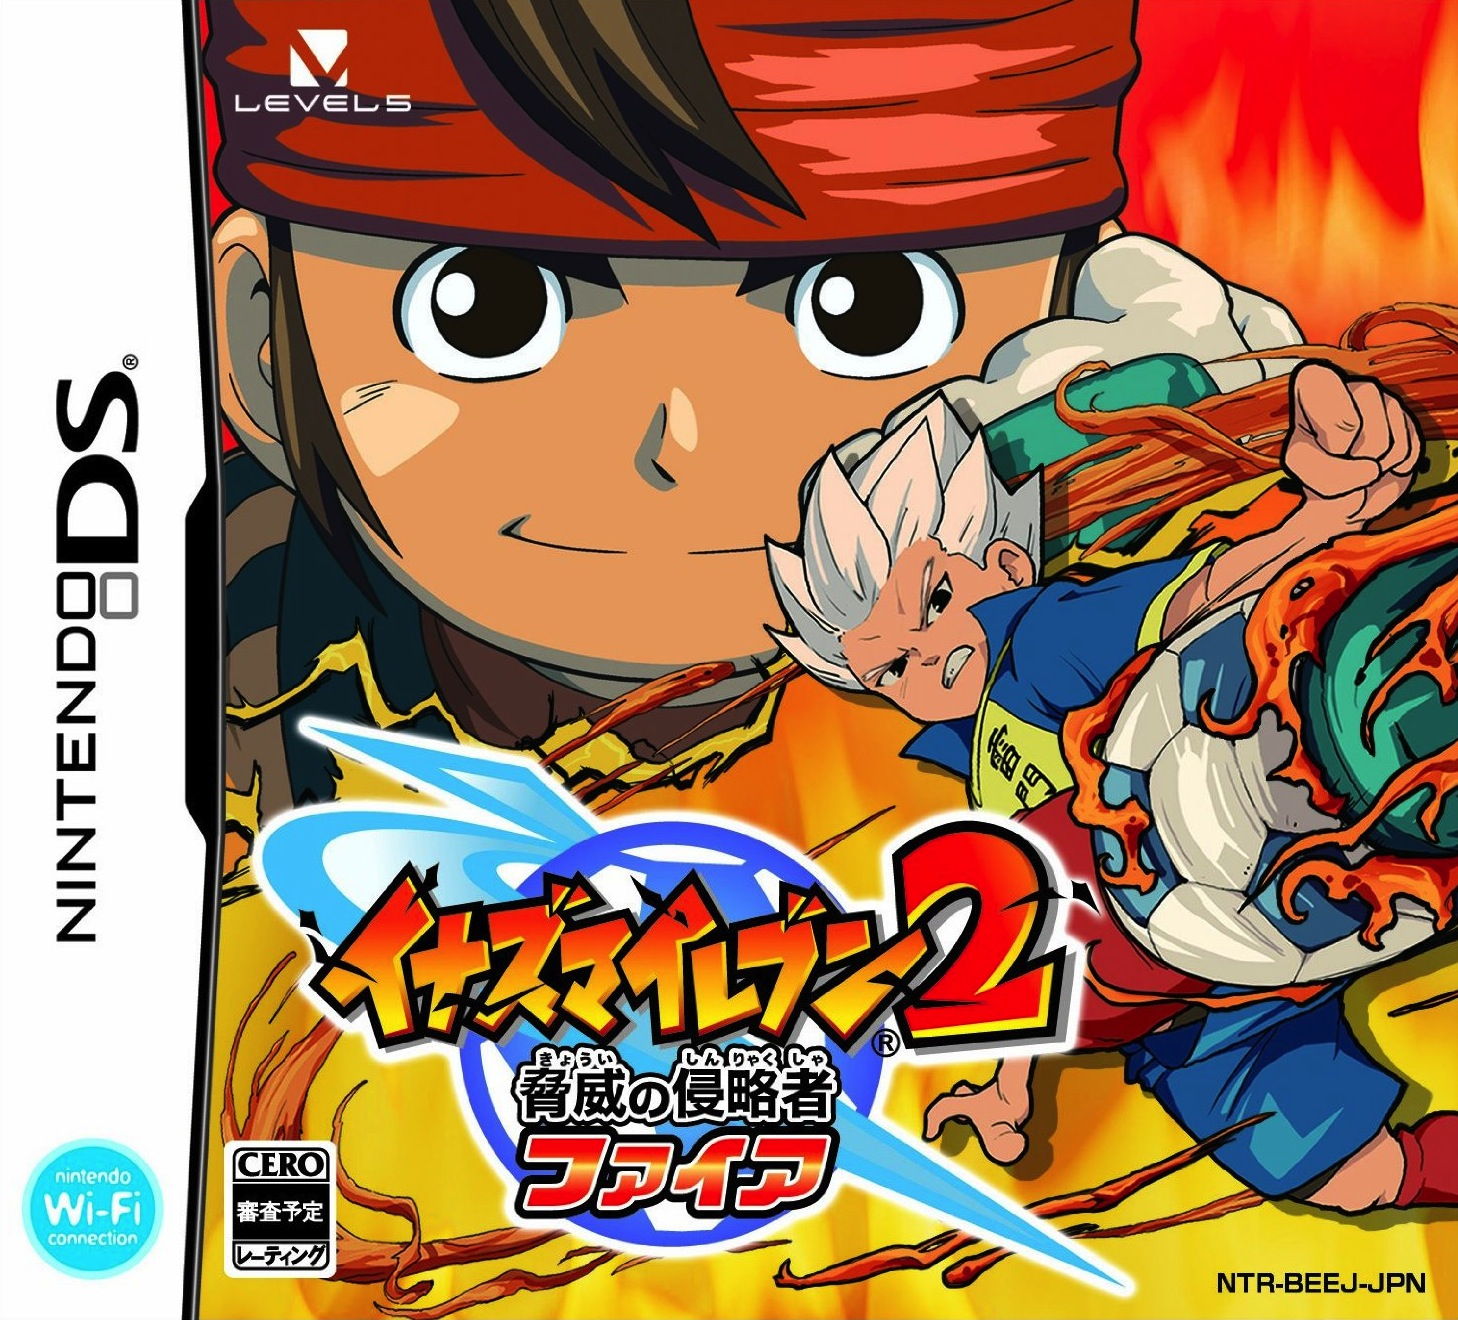 Download Game Inazuma Eleven Strikers 2013 Xtreme Pc